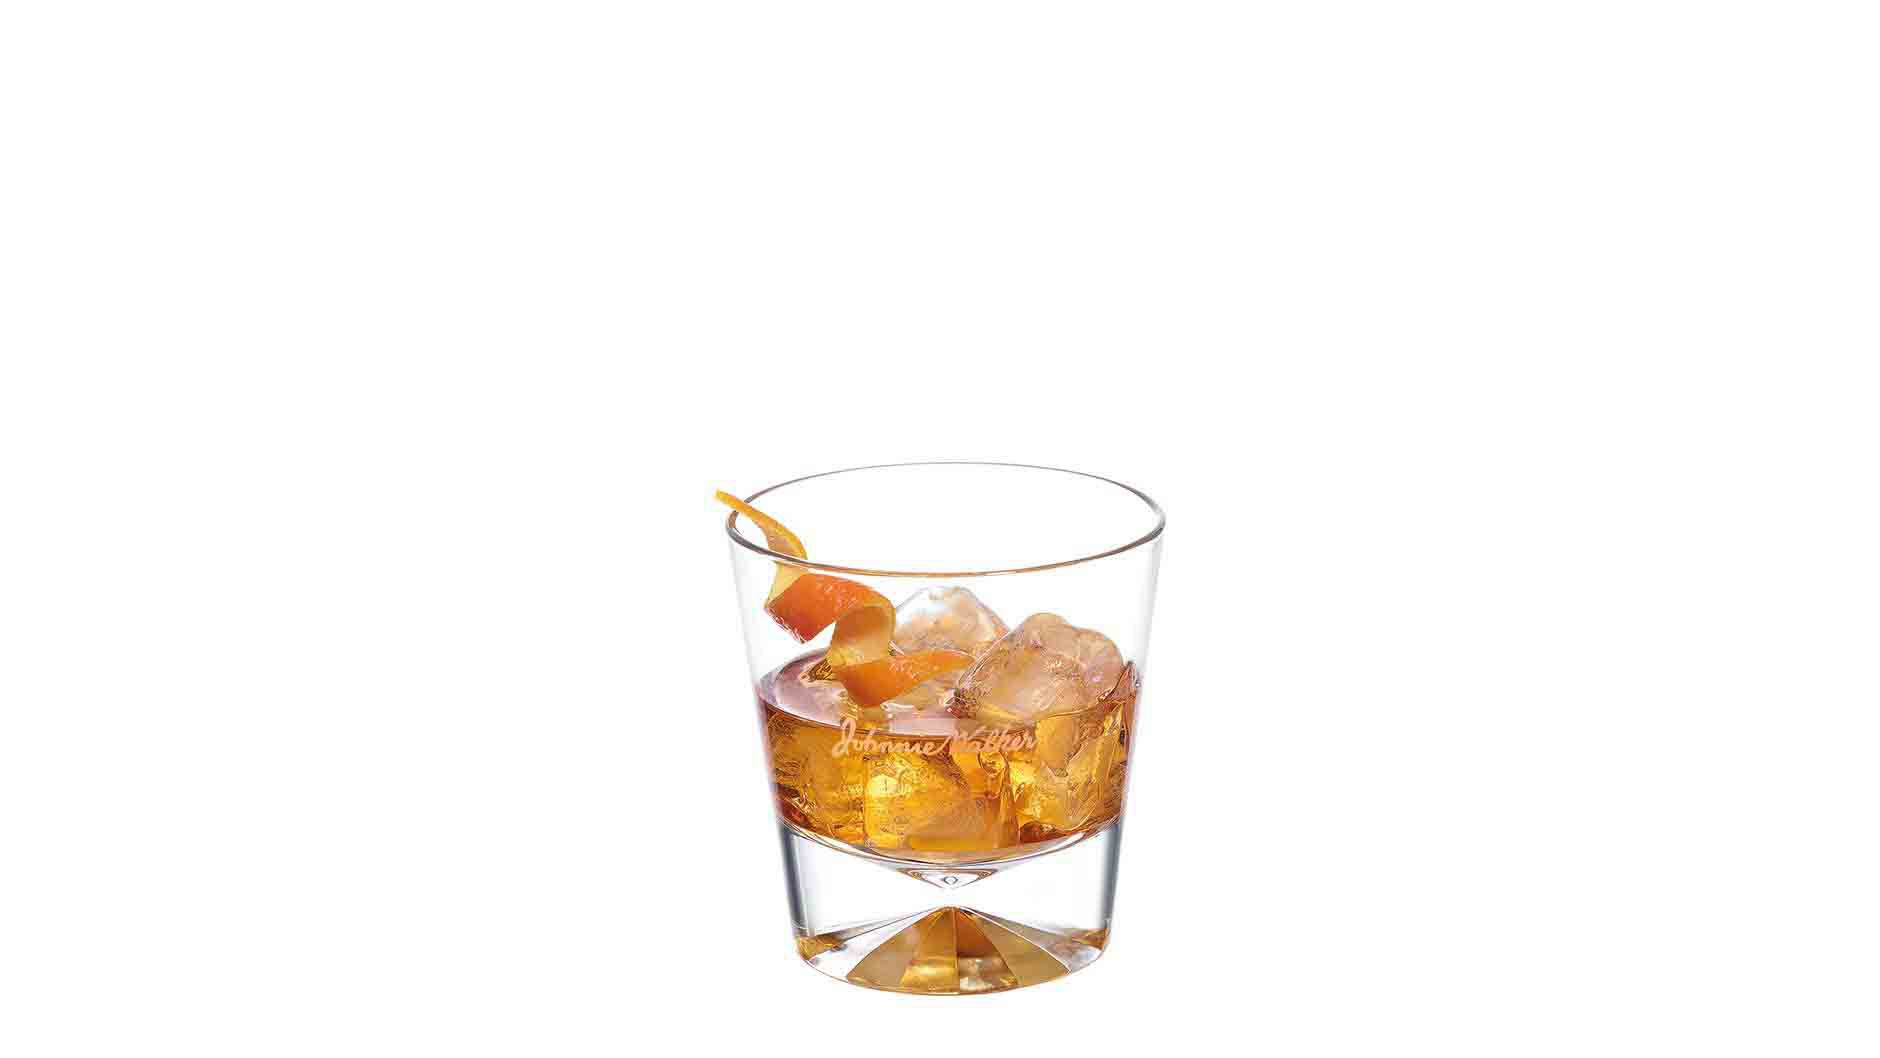 Koktejl Johnnie Walker Black Old Fashioned ve sklenici